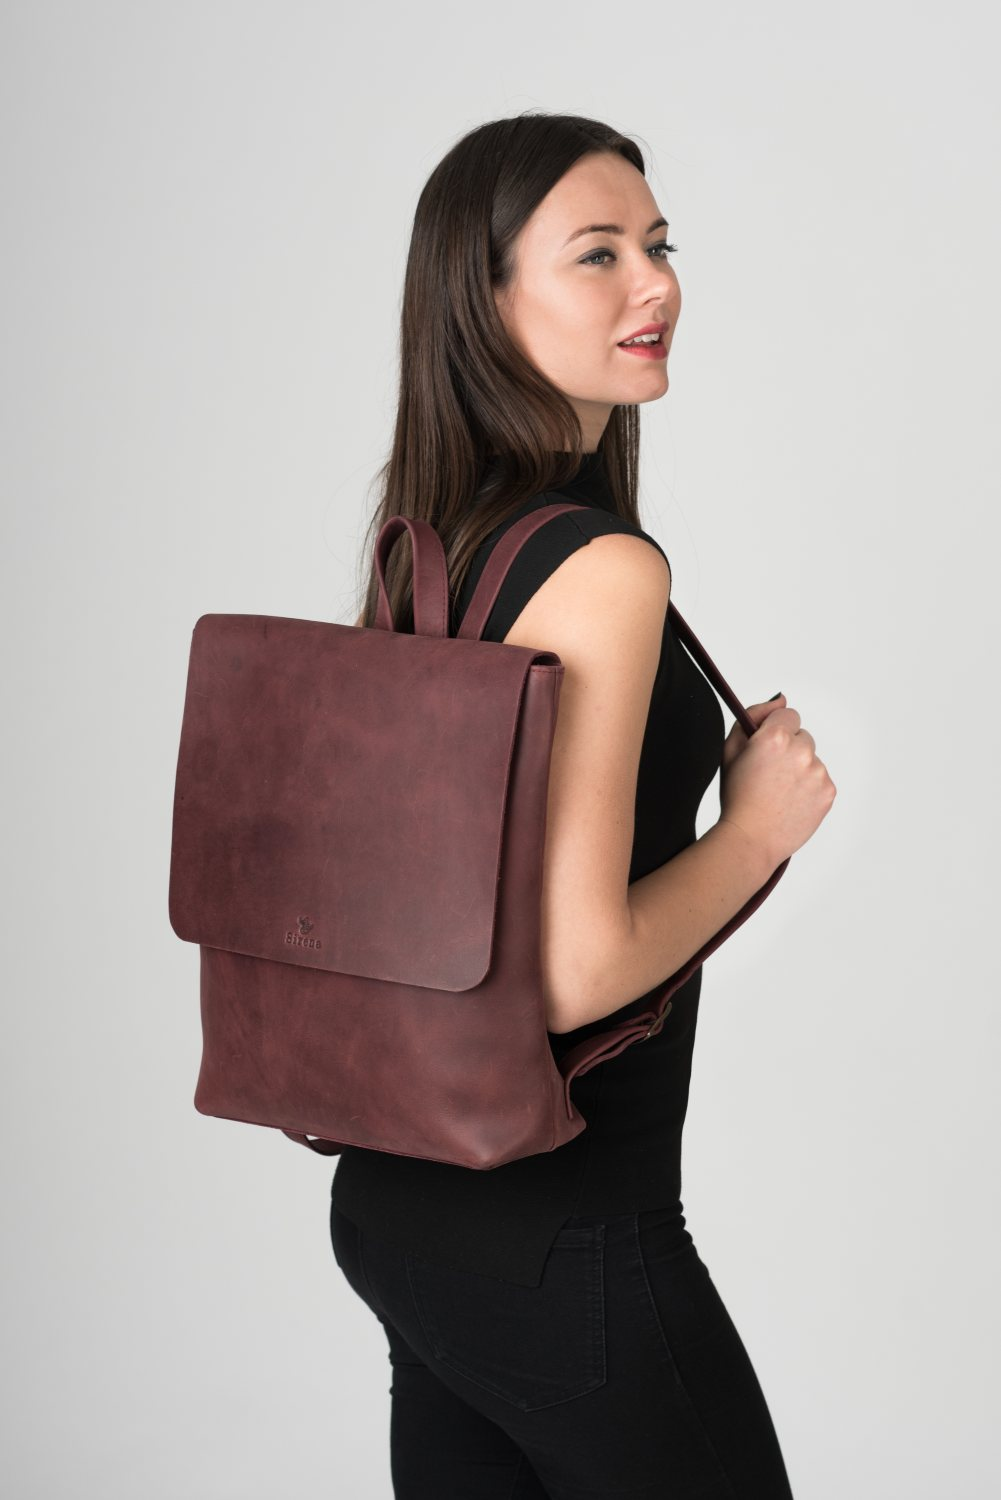 Large Handmade Leather Backpack in Brown or Black - Geneva